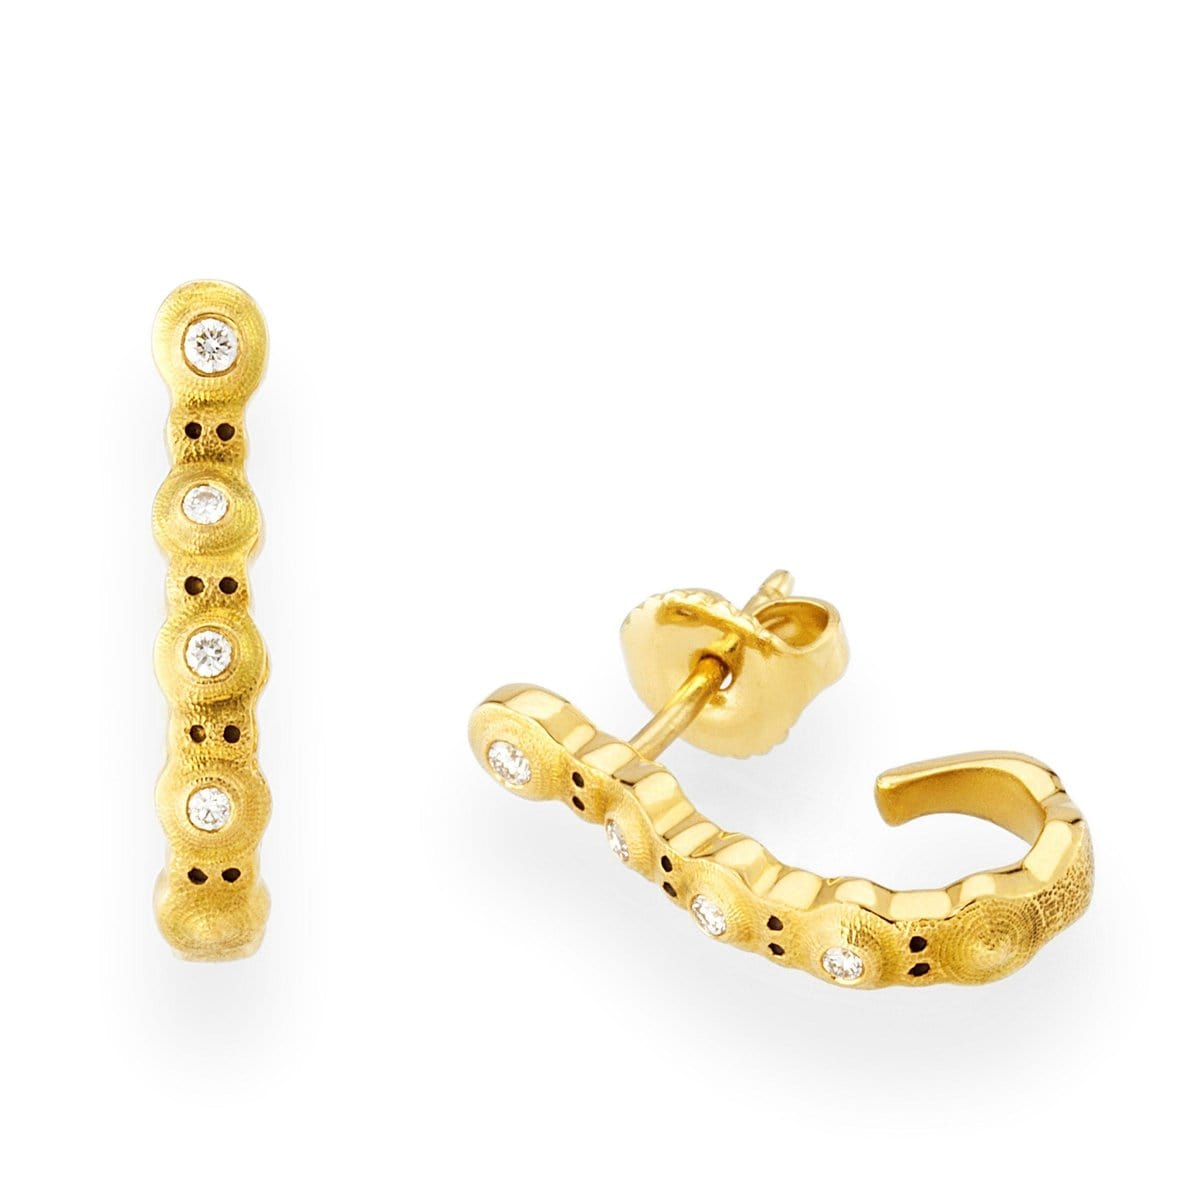 18K Four Peas Diamond Earrings - E-220D